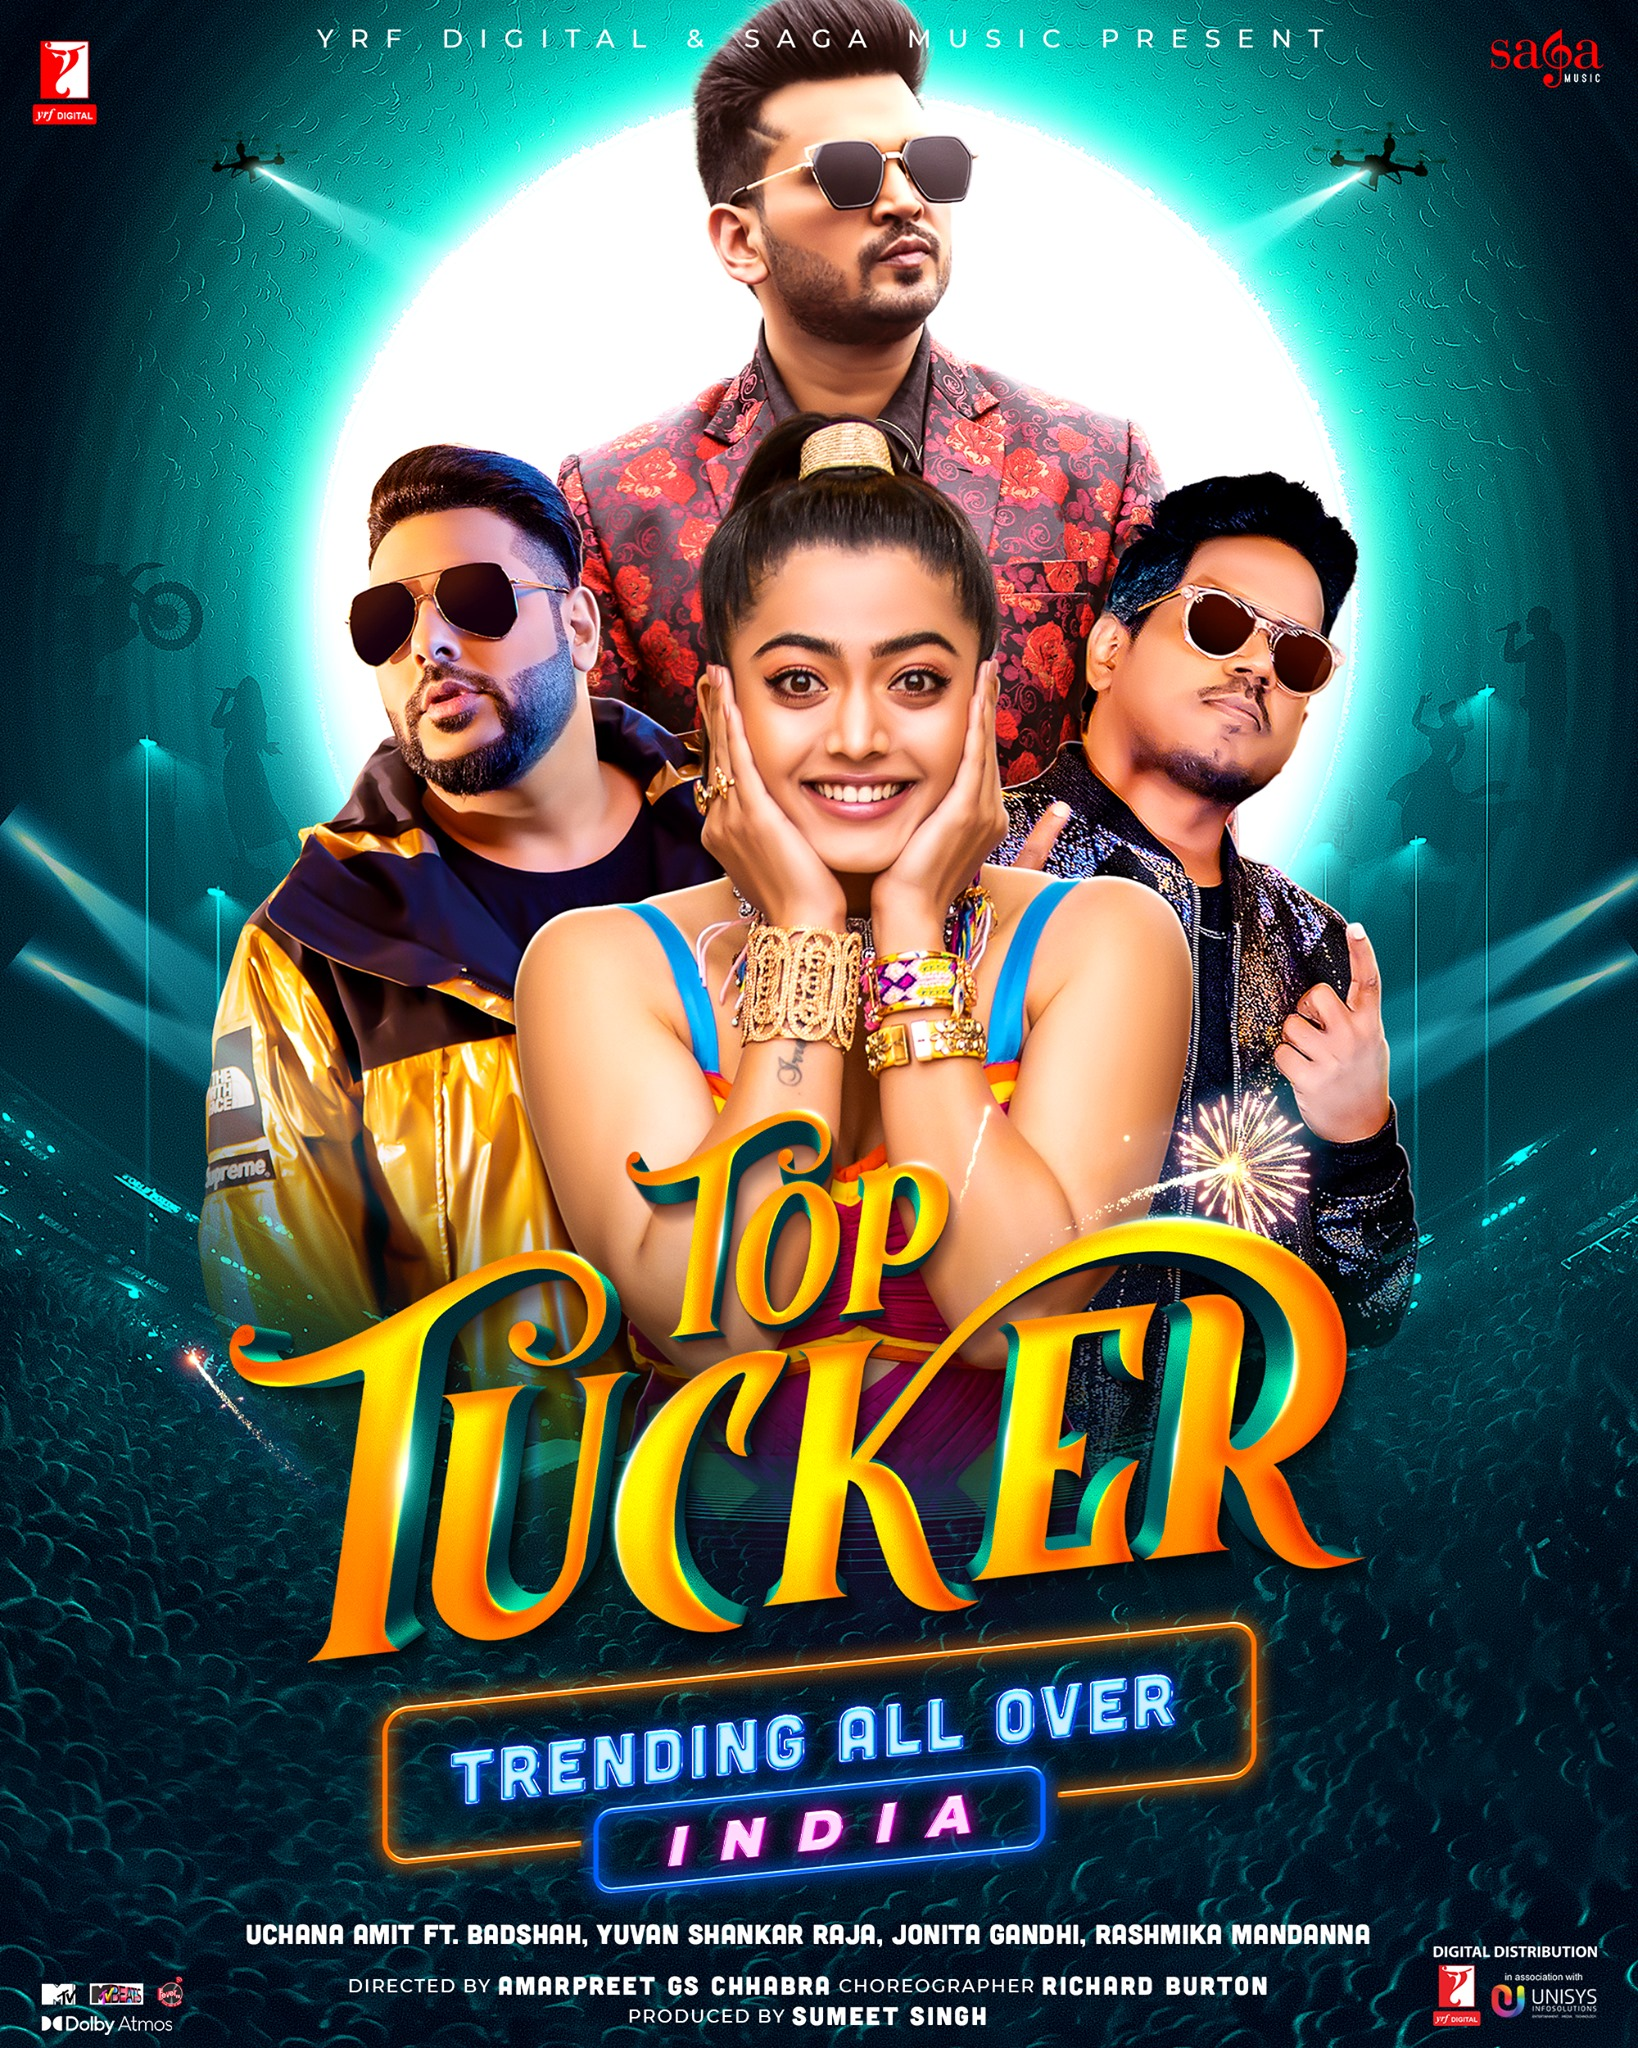 Top Tucker By Badshah Official Music Video 1080p HDRip Download